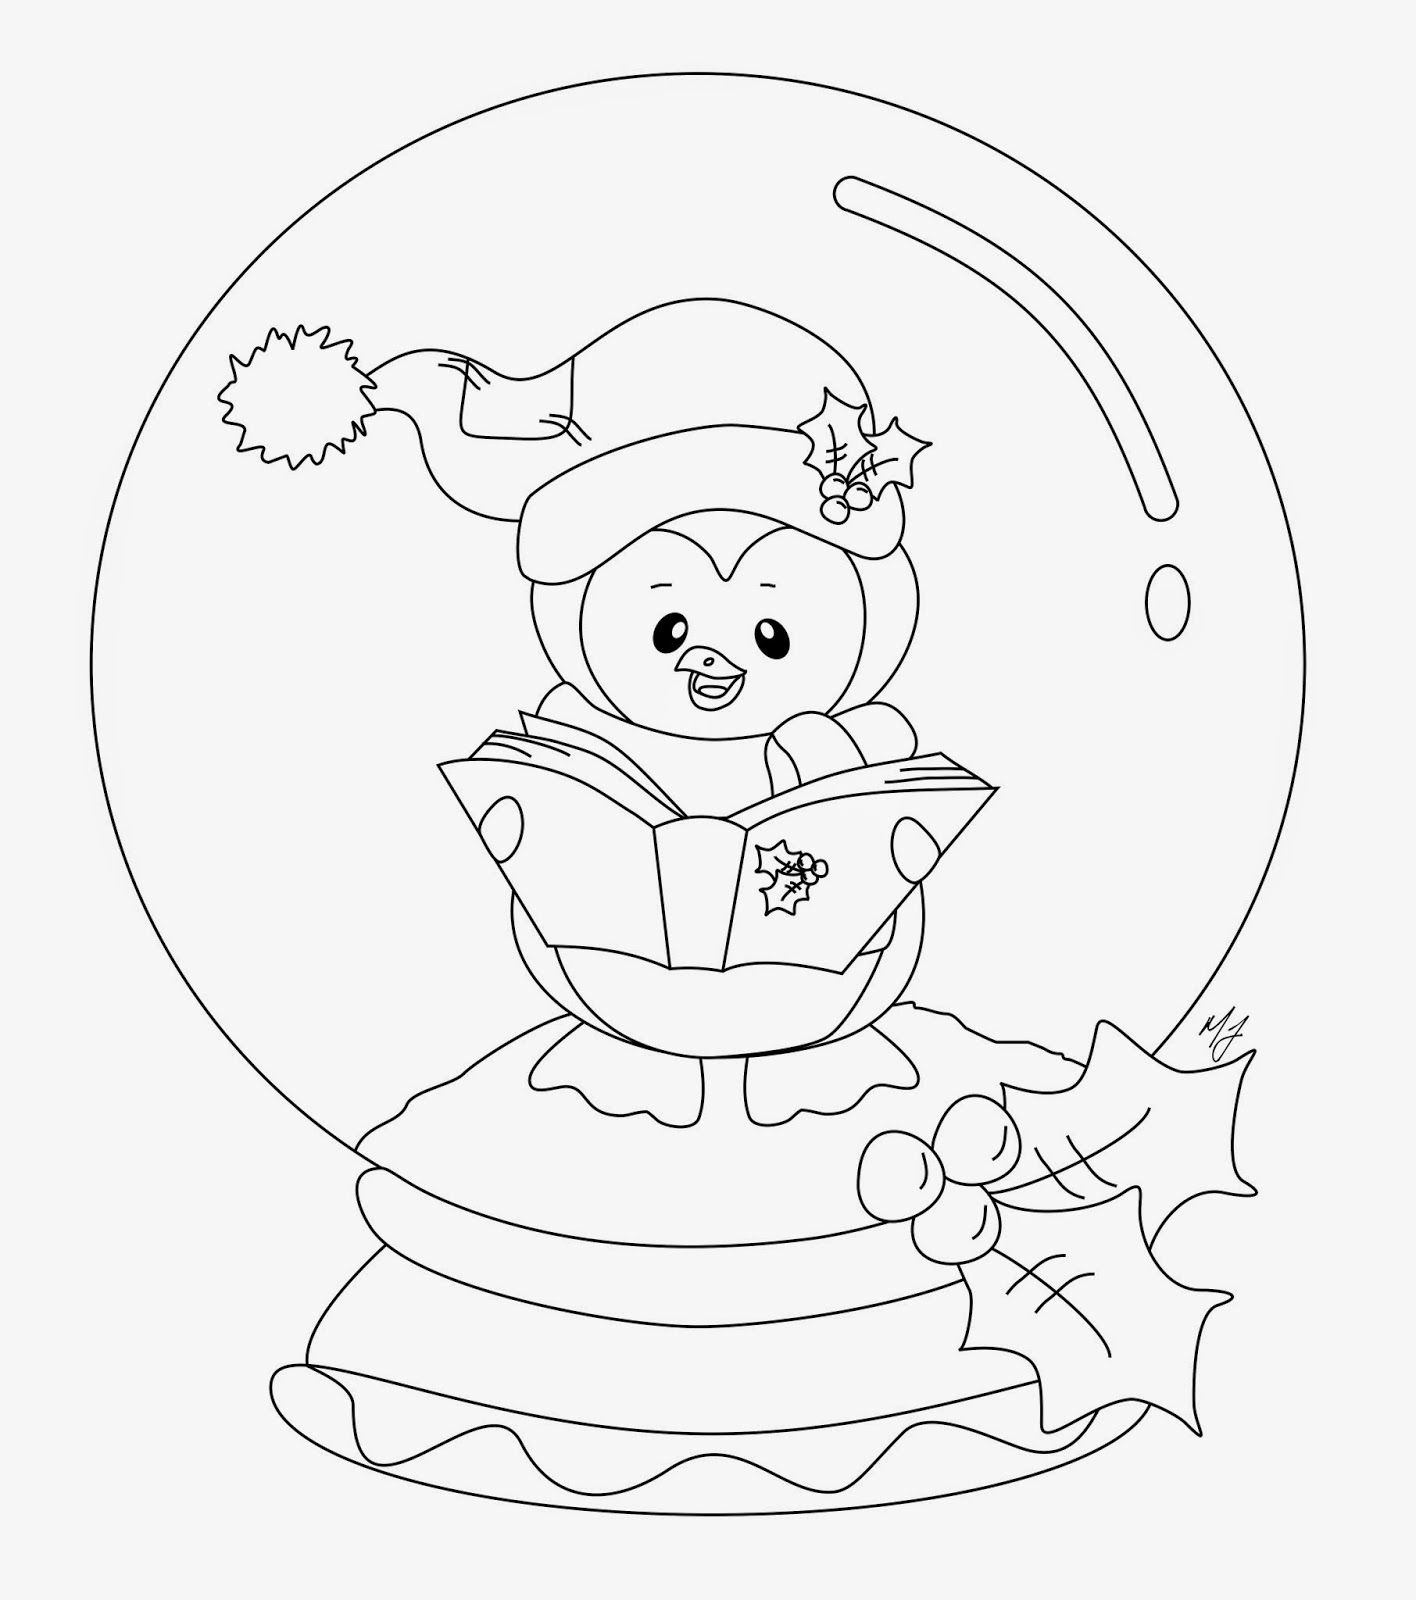 snow globe coloring page new snow globe coloring page design printable coloring coloring globe snow page